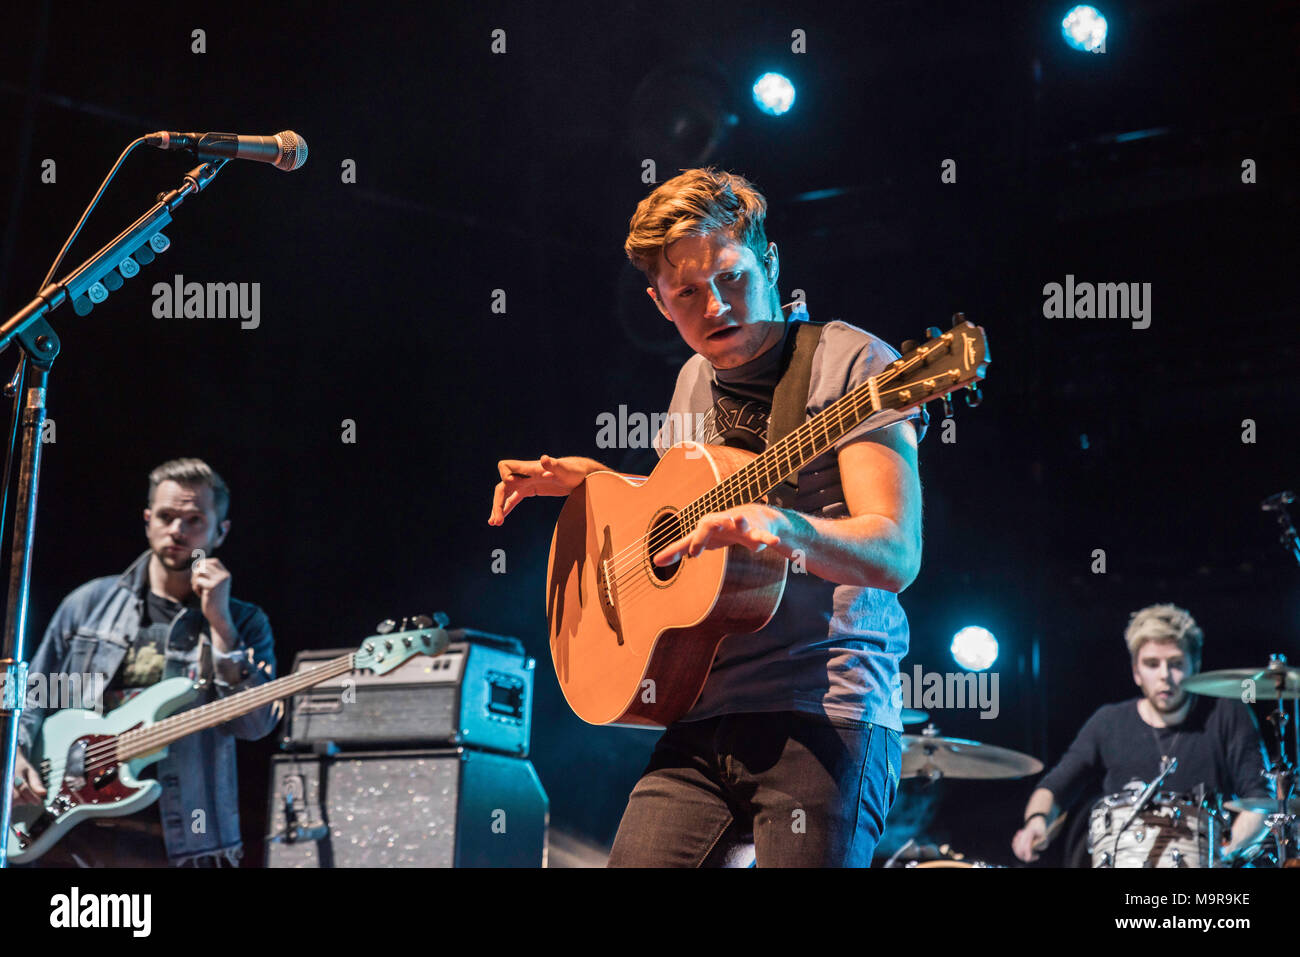 Niall Horan Glasgow Sse Hydro 2018 Flicker World Tour Adored By The Huge Glasgow Crowd At The Armadillo Stock Photo Alamy